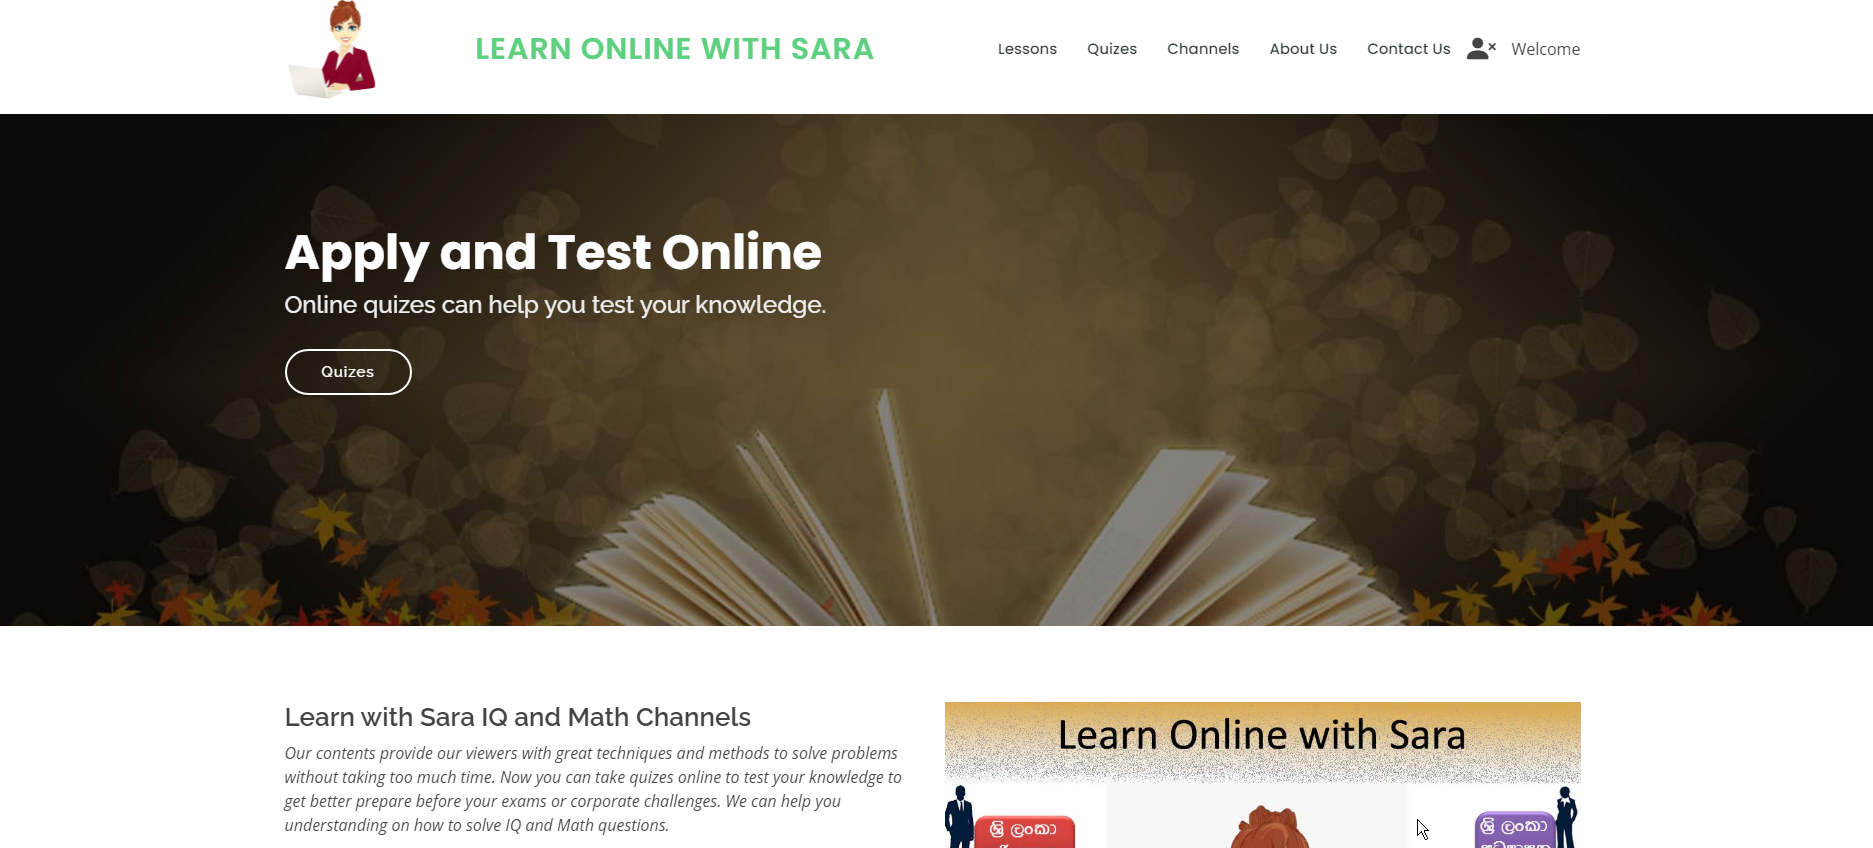 learnonlinewithsara